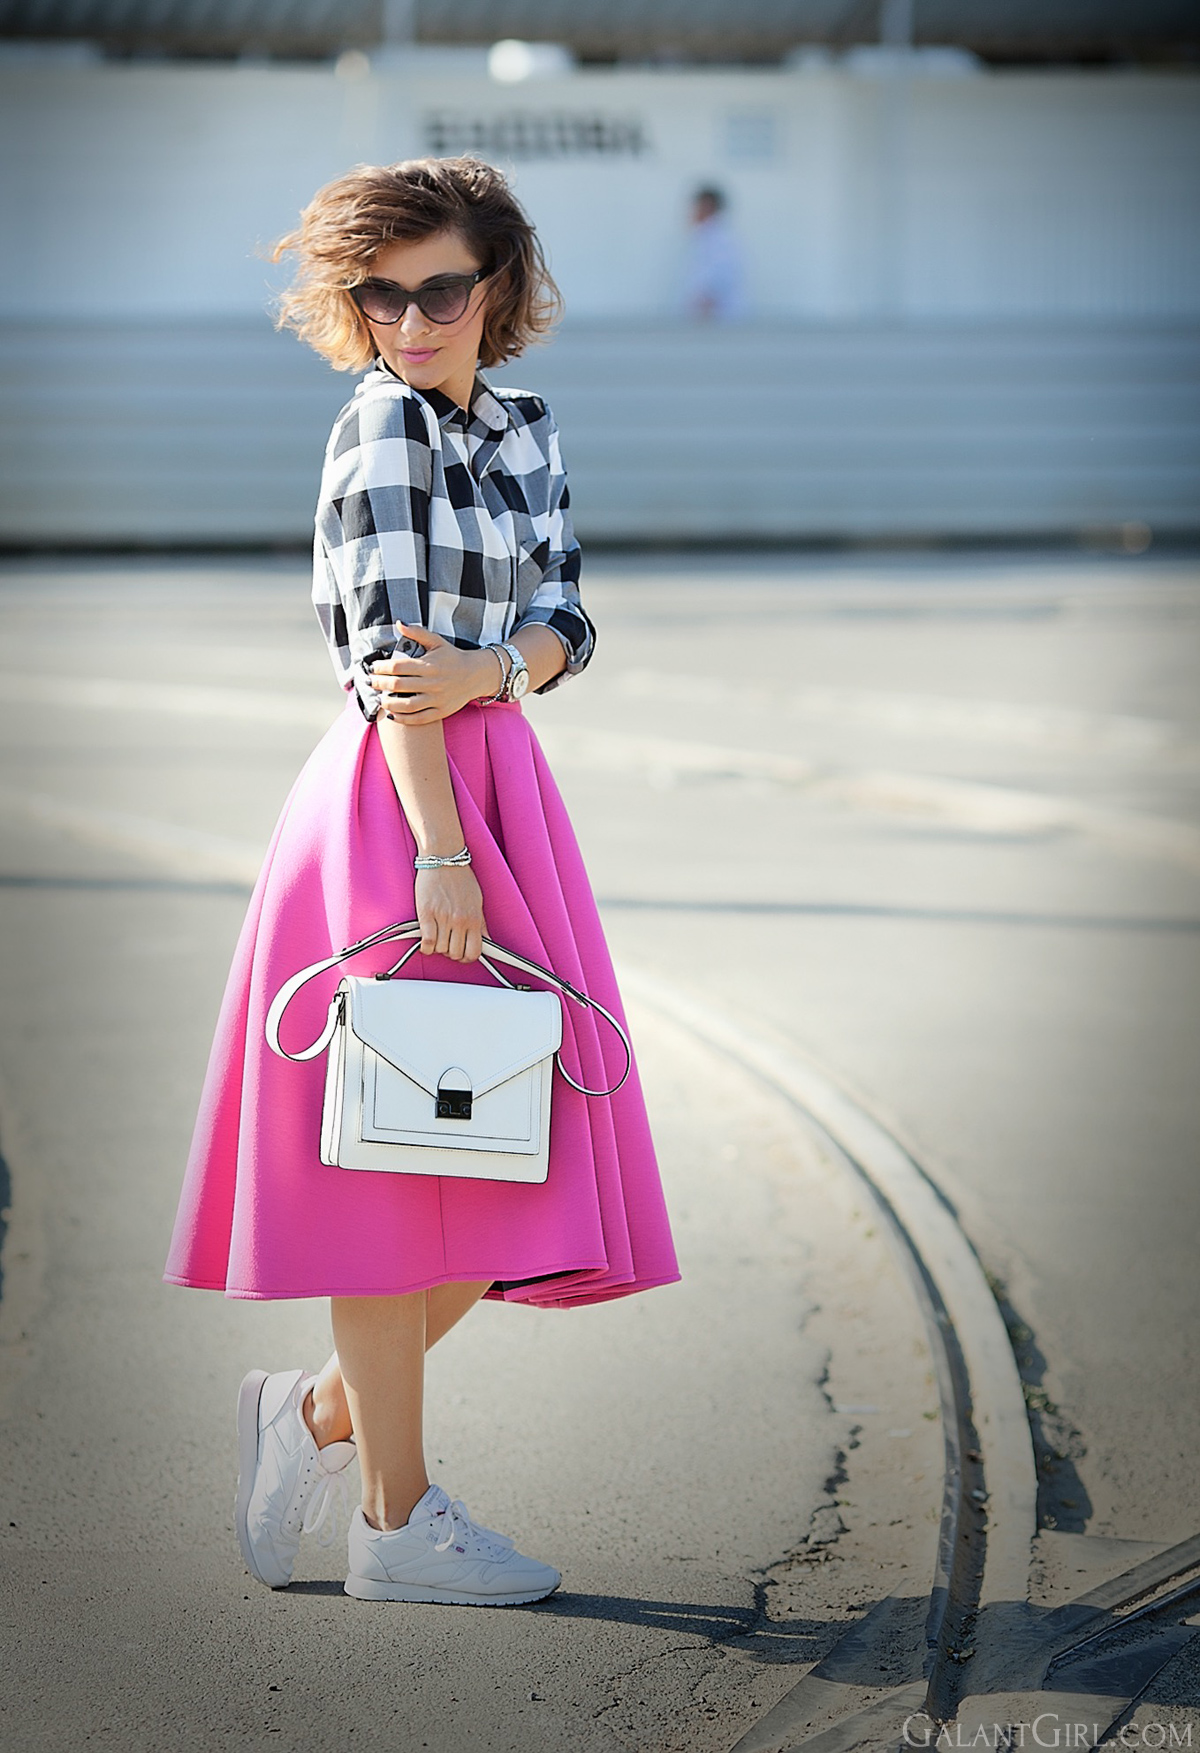 flared-skirt-chois-reebok-sneakers-outfit-galant-girl